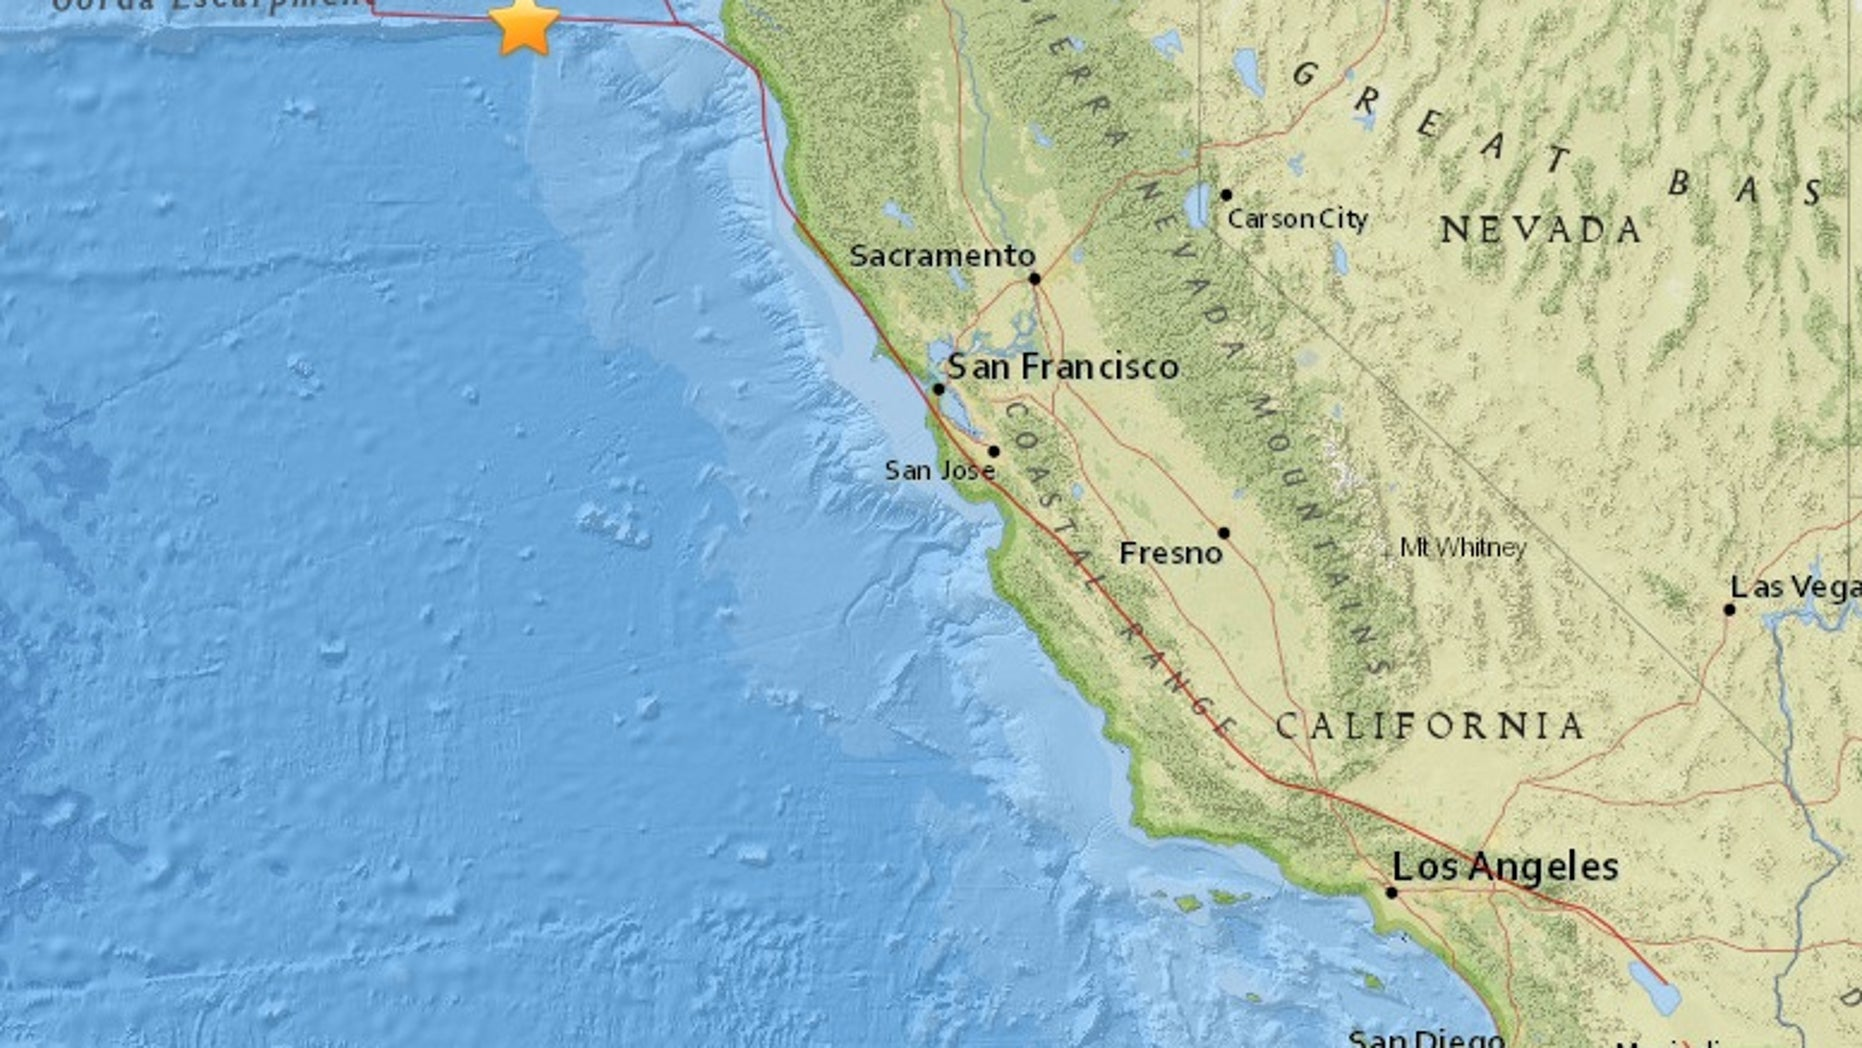 USGS map of the earthquake's epicenter.